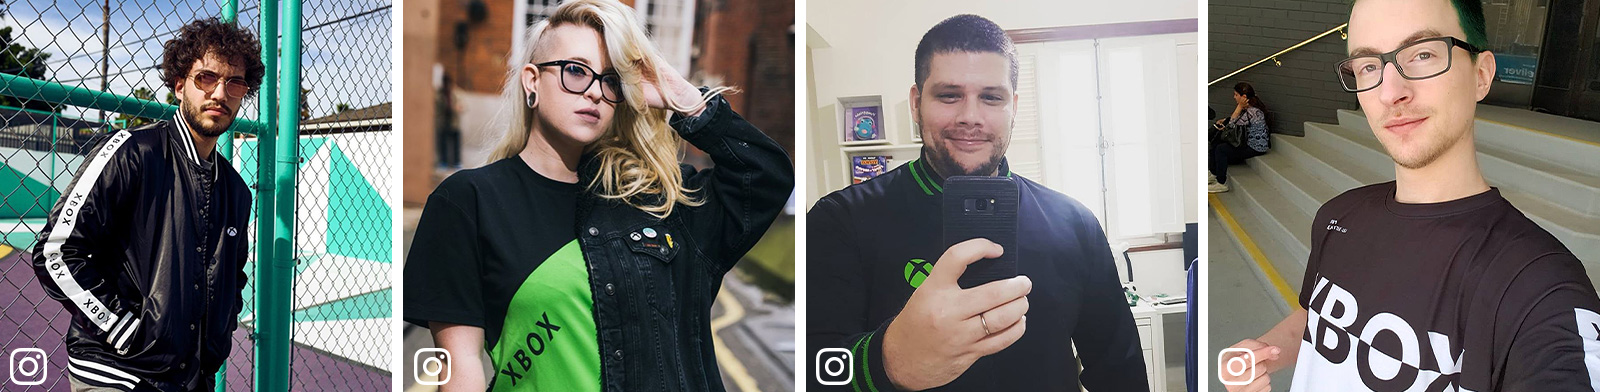 Four images of people wearing Xbox clothing